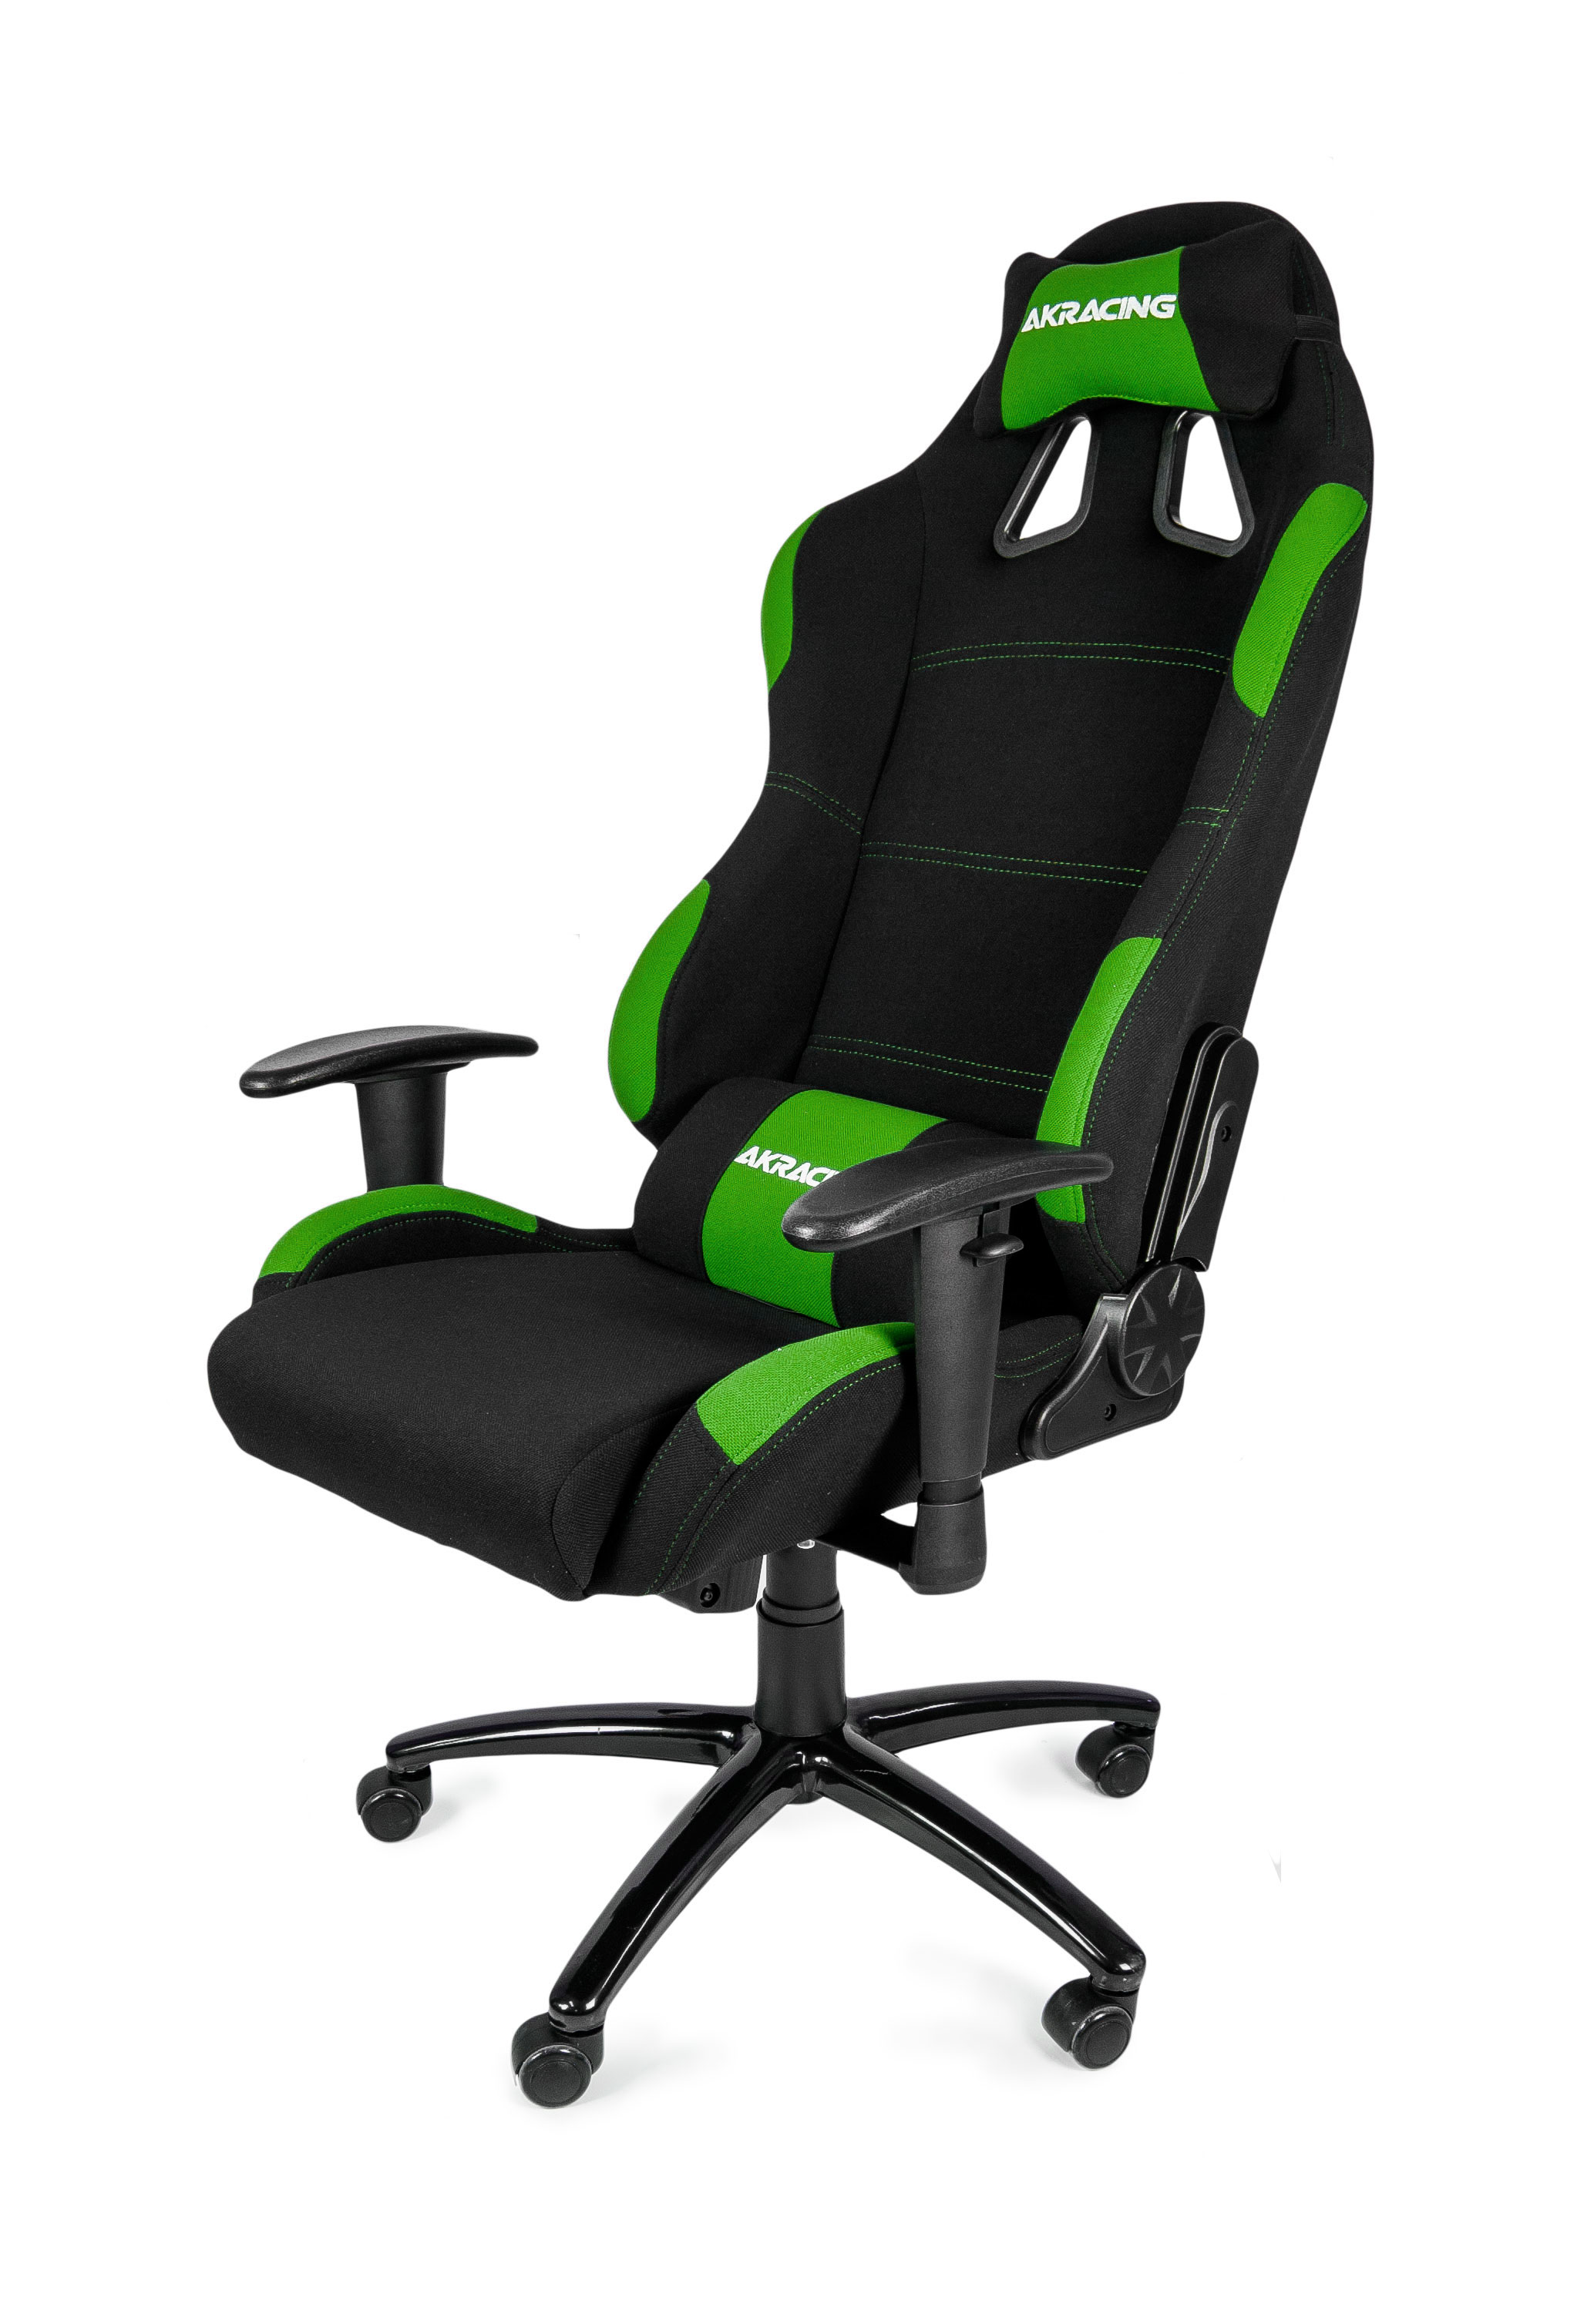 akracing gaming chair black green ak k7012 bg improve your game. Black Bedroom Furniture Sets. Home Design Ideas